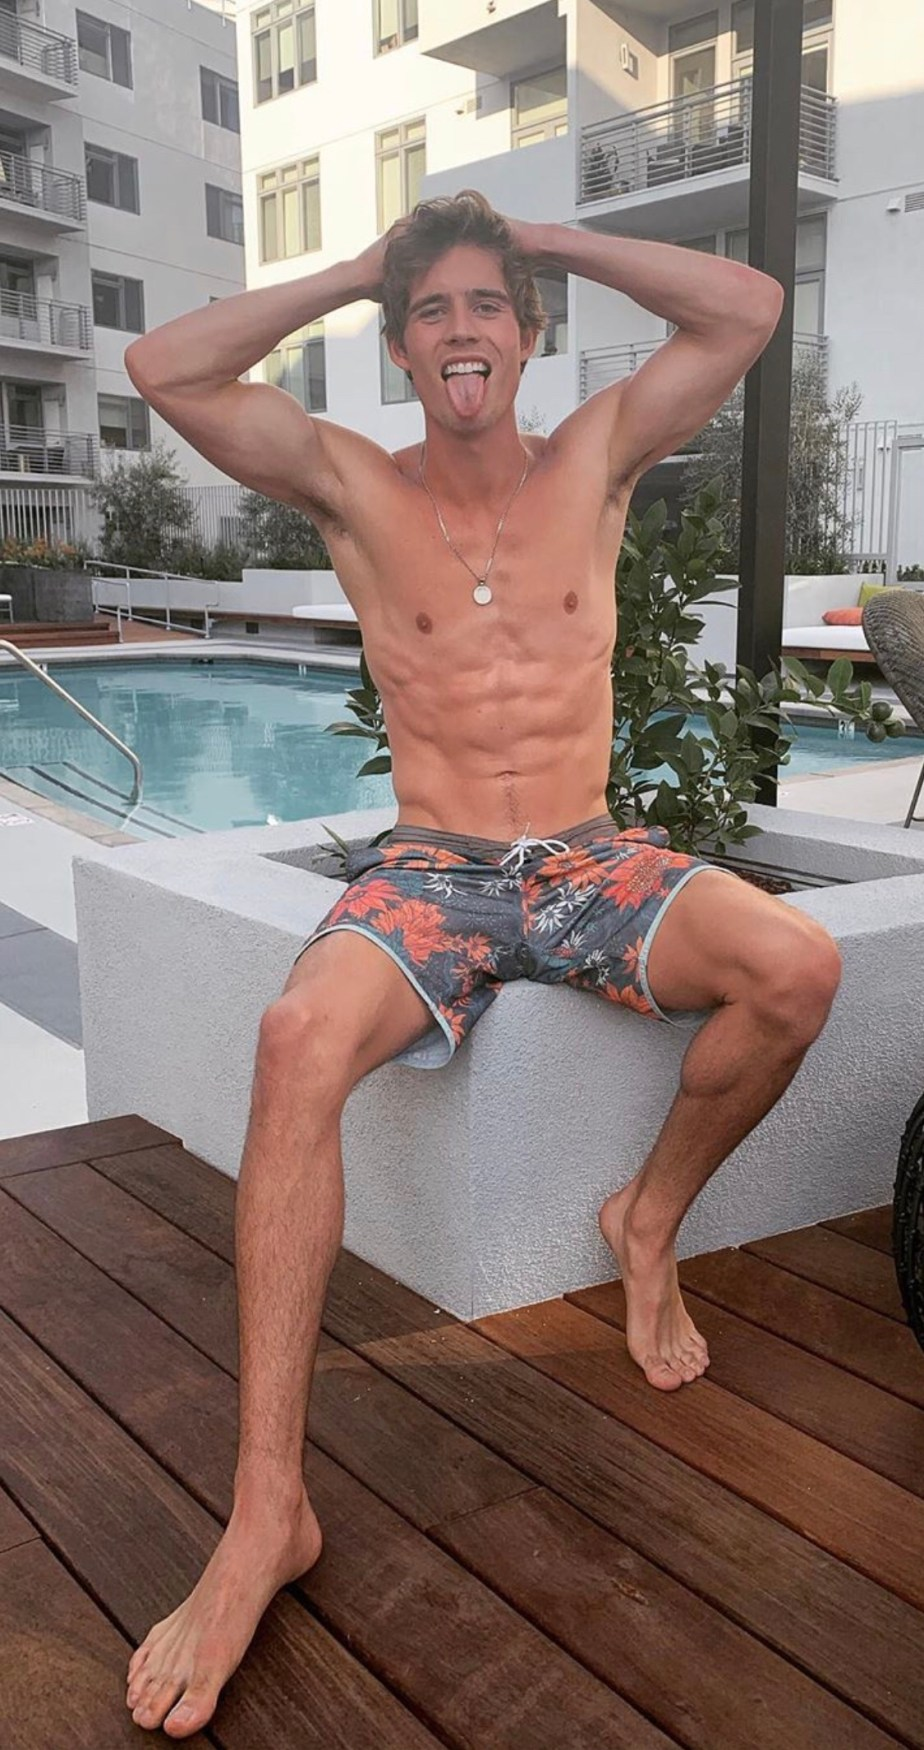 Leif.offerdahl shirtless and barefoot by the pool